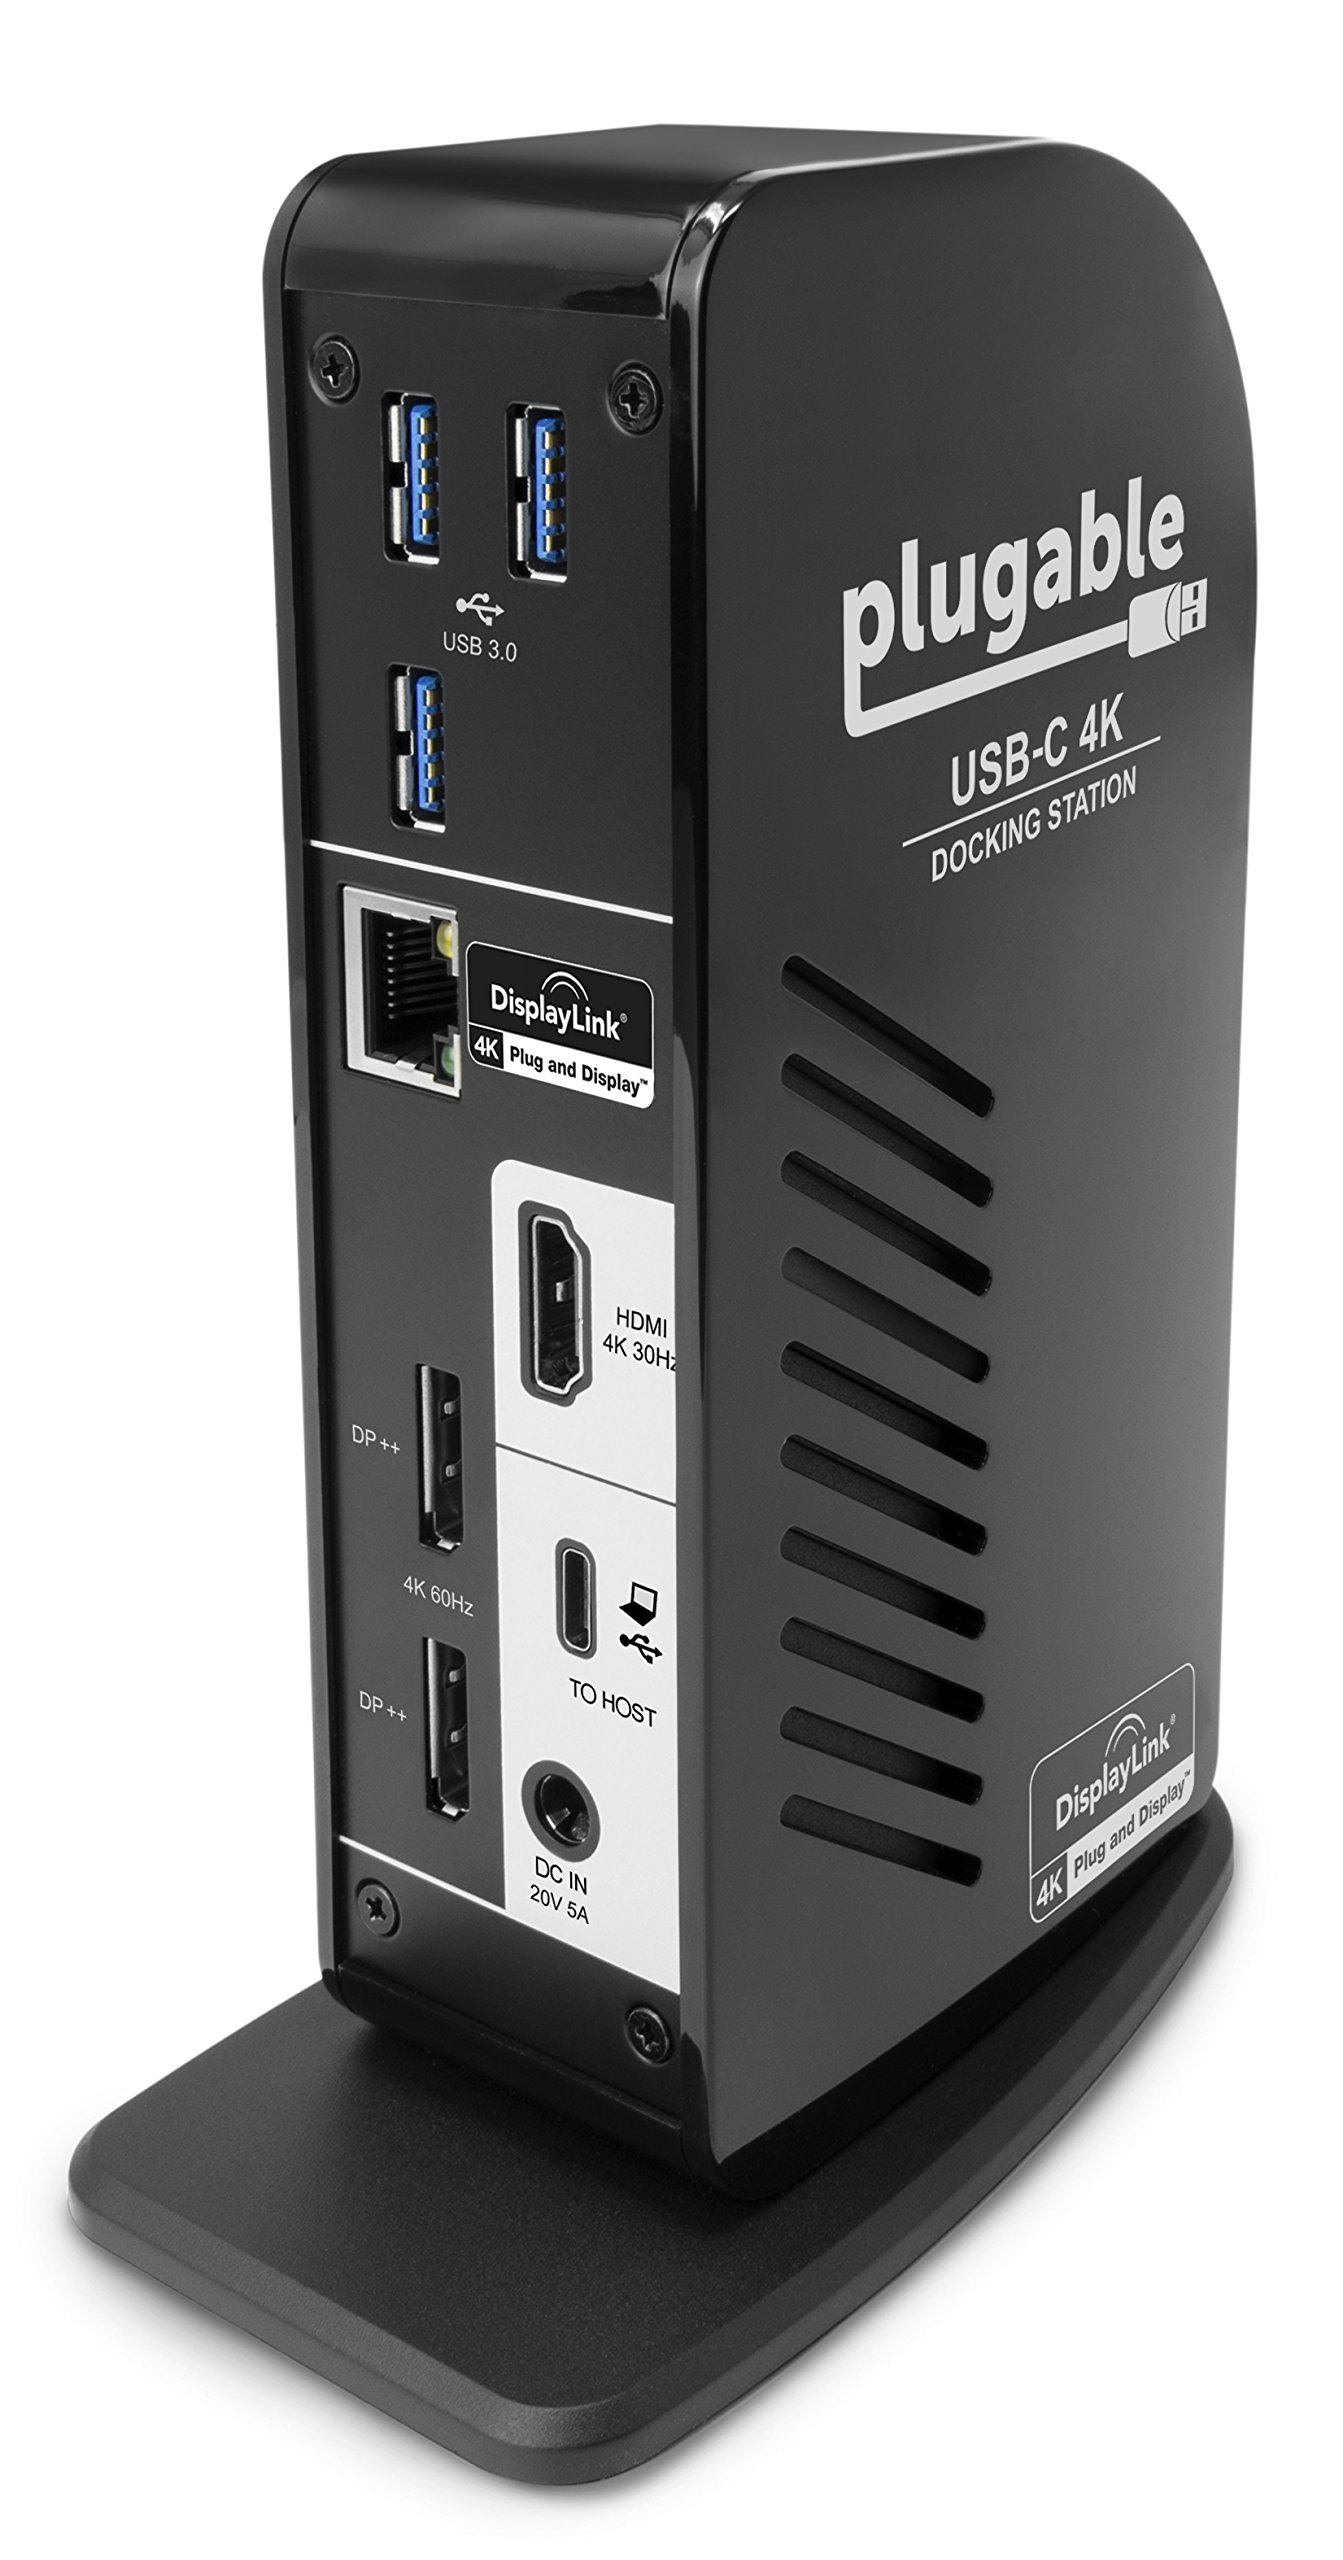 Plugable USB-C 4K Triple Display Docking Station with Charging Support for Specific Mac & Windows USB Type-C / Thunderbolt 3 Sysems (1x HDMI & 2x DisplayPort++ Outputs, 60W USB PD) by Plugable (Image #2)